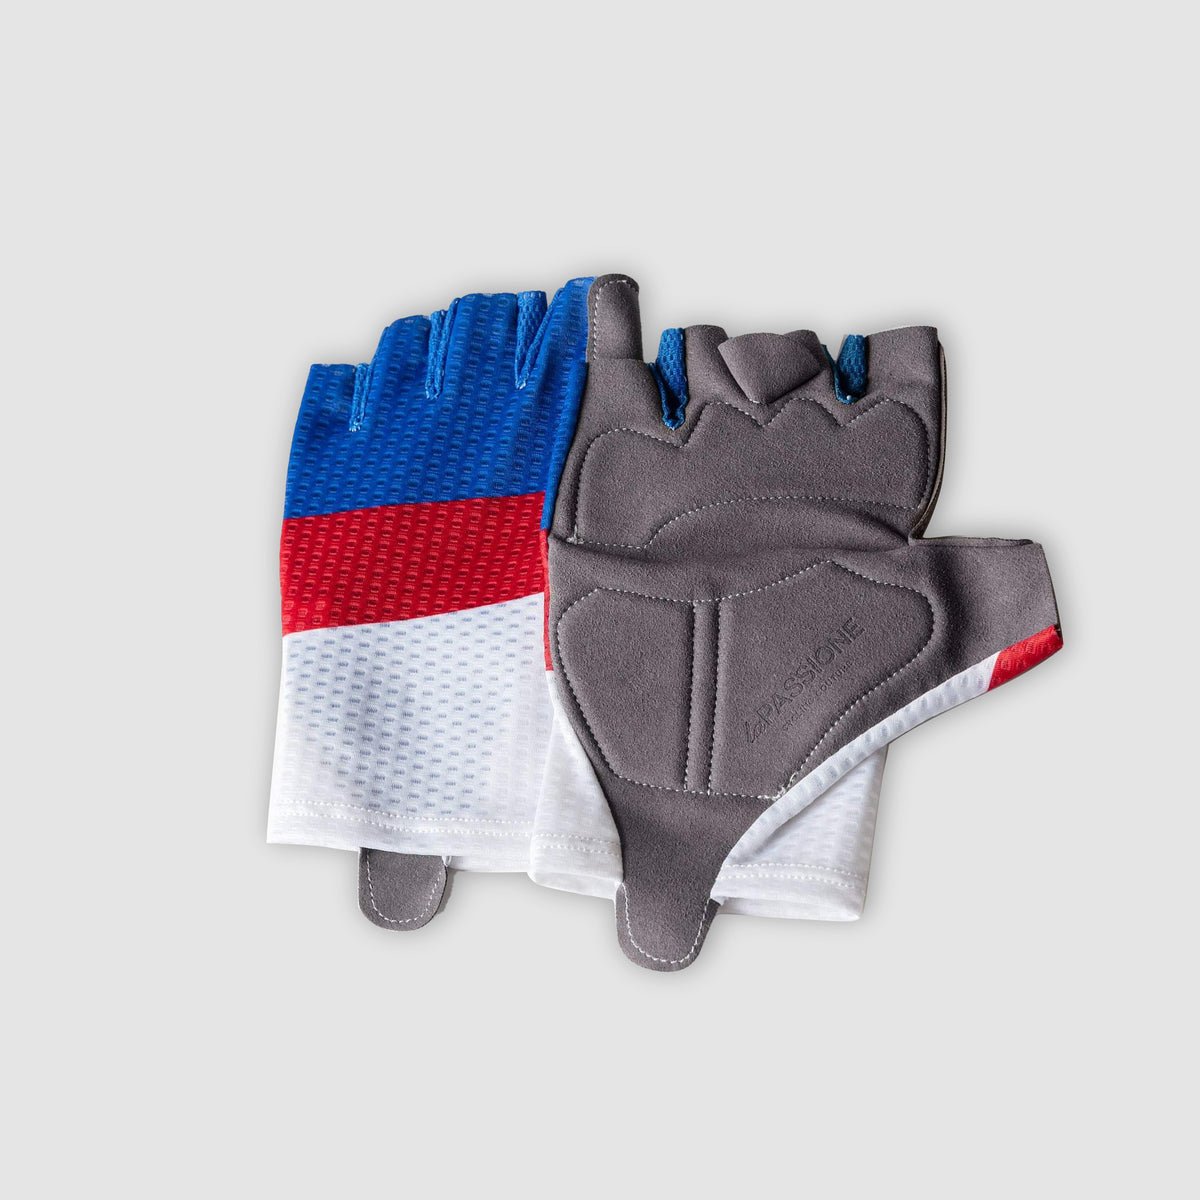 Livery Gloves White/Indigo